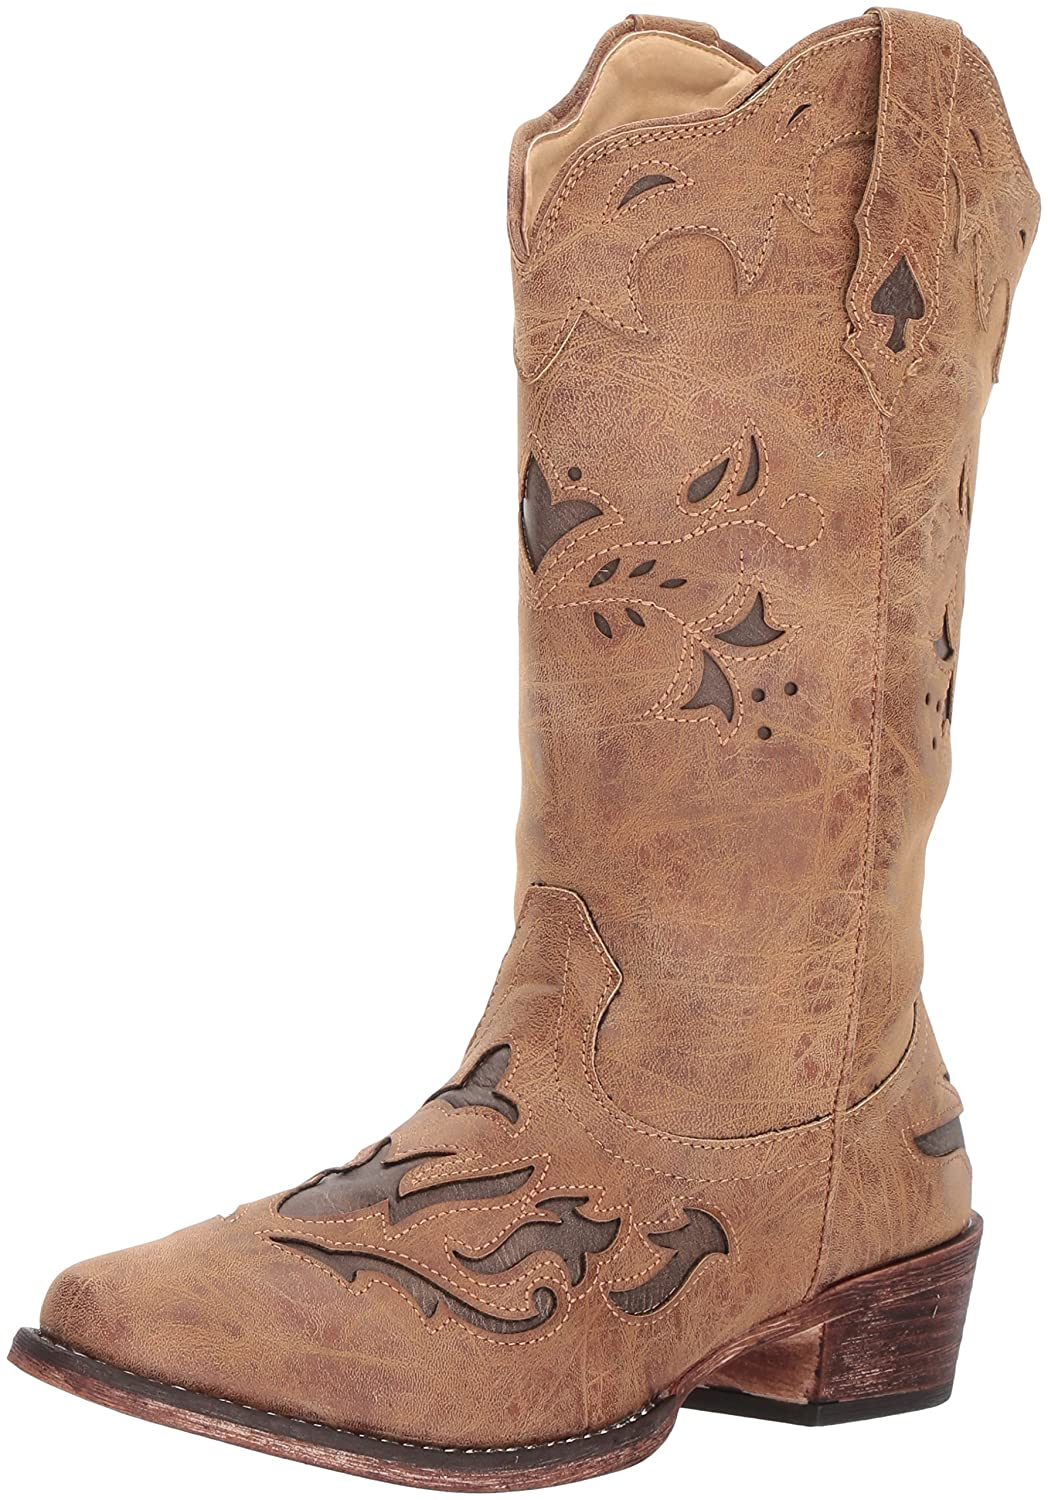 Roper Women's Spade Western Boot B074D4BP26 9 B(M) US|Tan